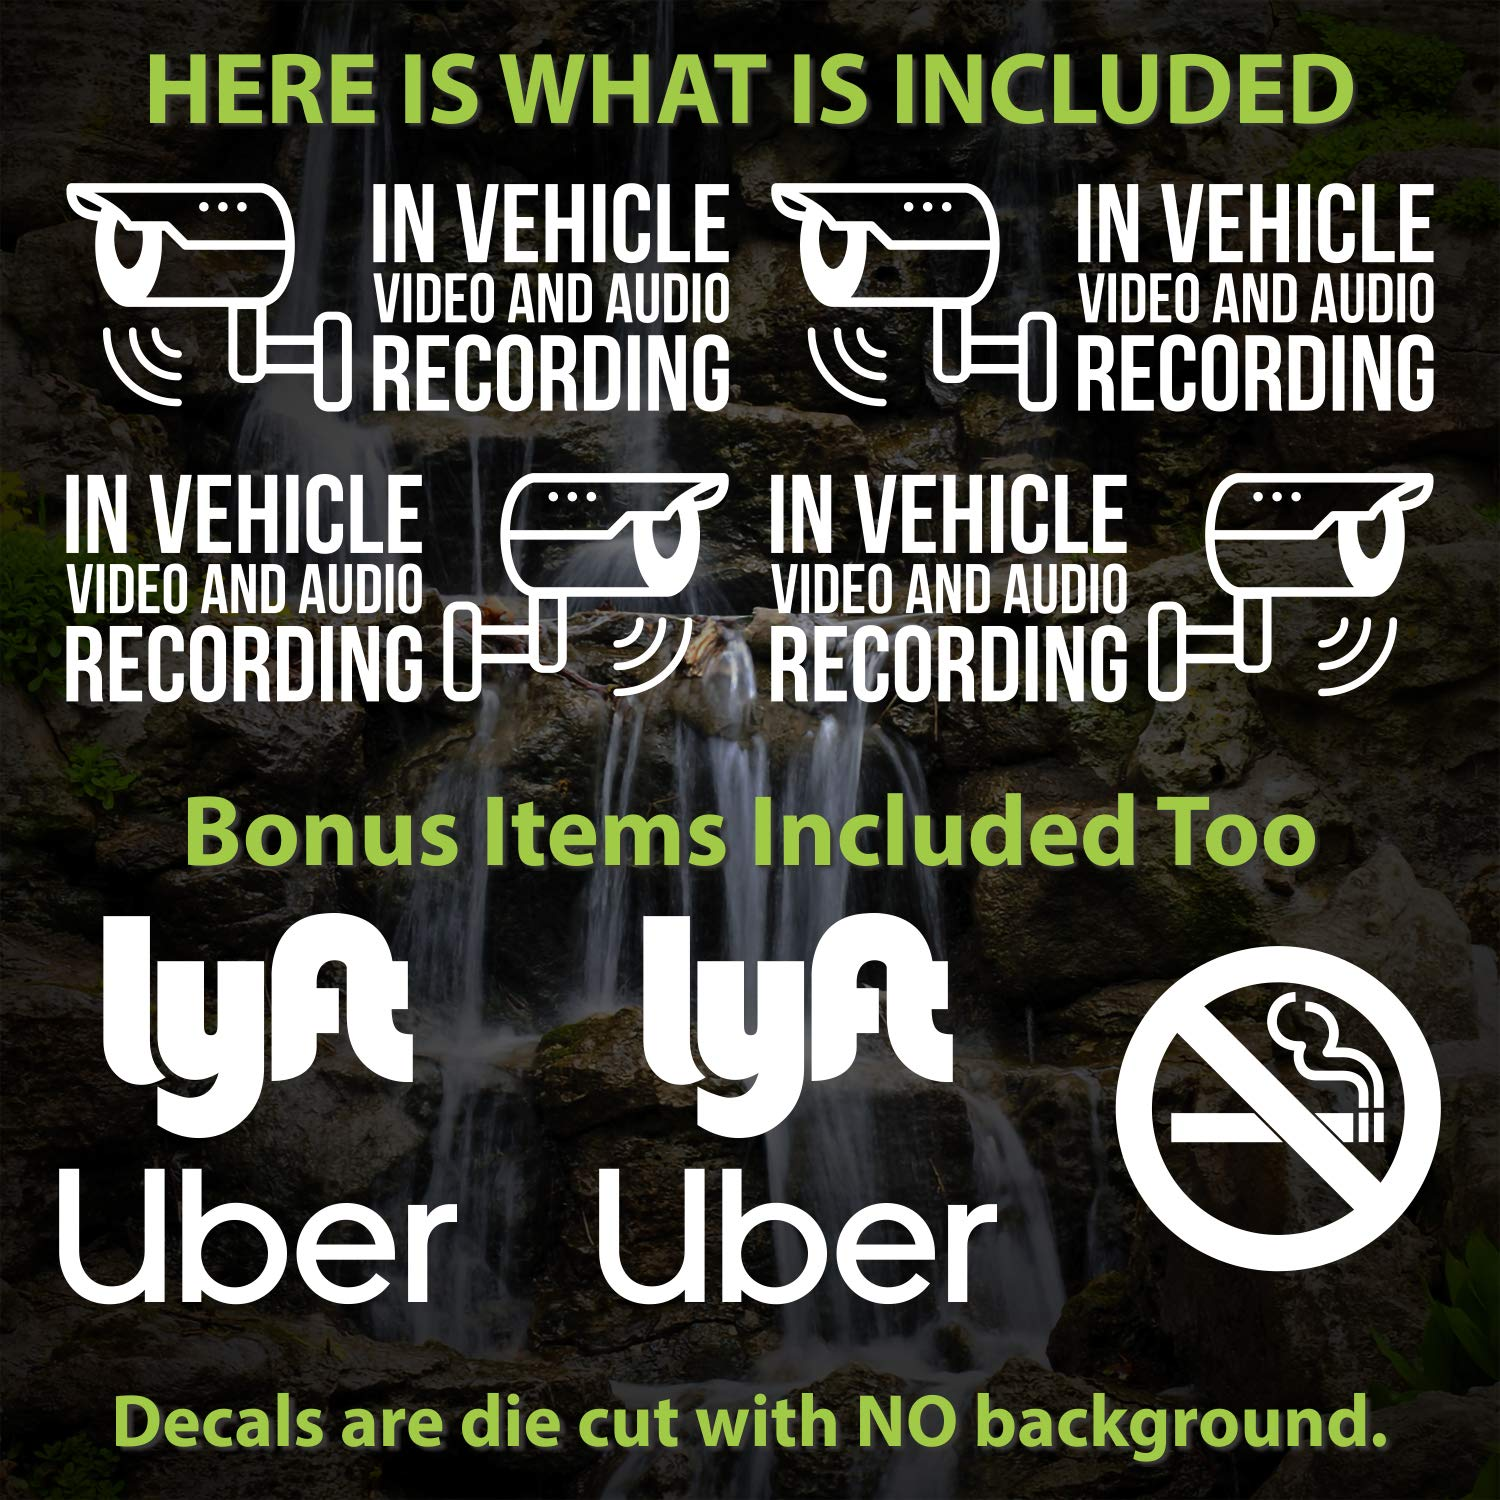 2X for Driver Side, 2X for Passenger Side -White -5.5 W -UBER DASHCAM Security Decal Dashcam Decals 4X Rideshare Zippy Stickers In Vehicle Video and Audio Recording Vinyl Decal Stickers LYFT